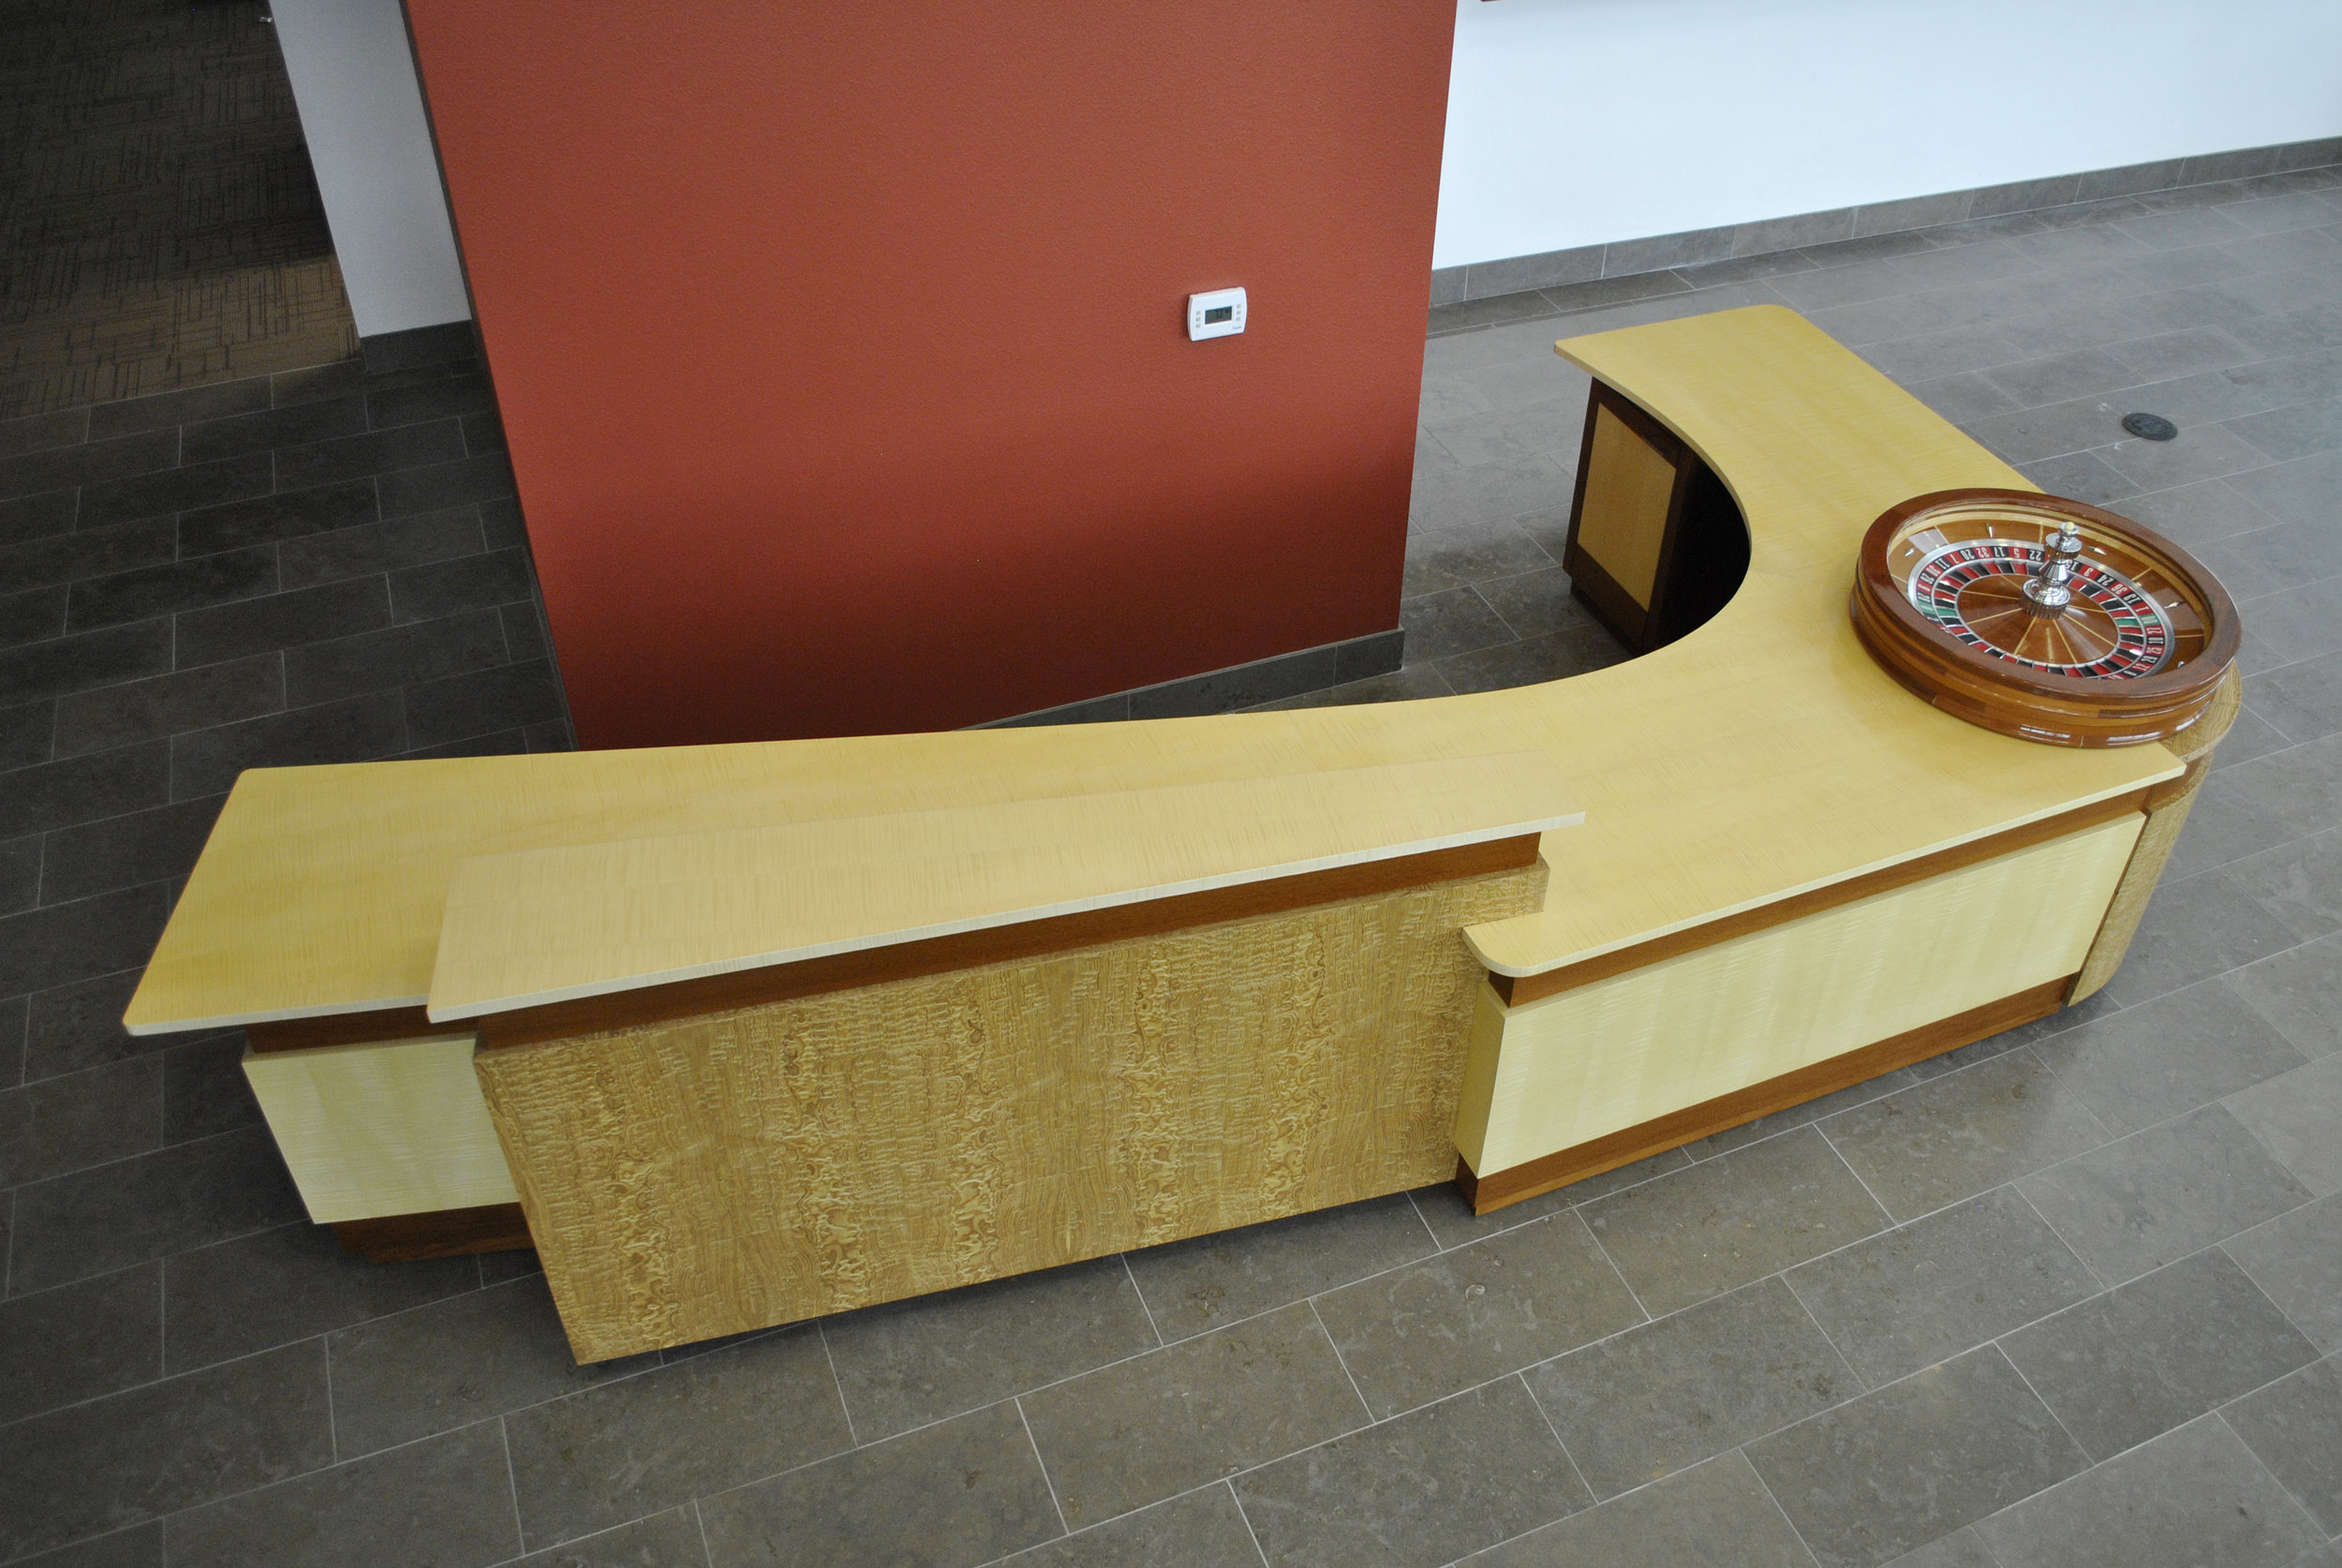 Reception Desks - Reception Desks exist on the line between millwork and furniture. They're always custom and present their own challenges for durability, usability, and wire-management access. Commercial lobby renovations are a common theme on the market today and these small, yet finish heavy projects almost always involve a Reception Desk. We can help! For more information Click!